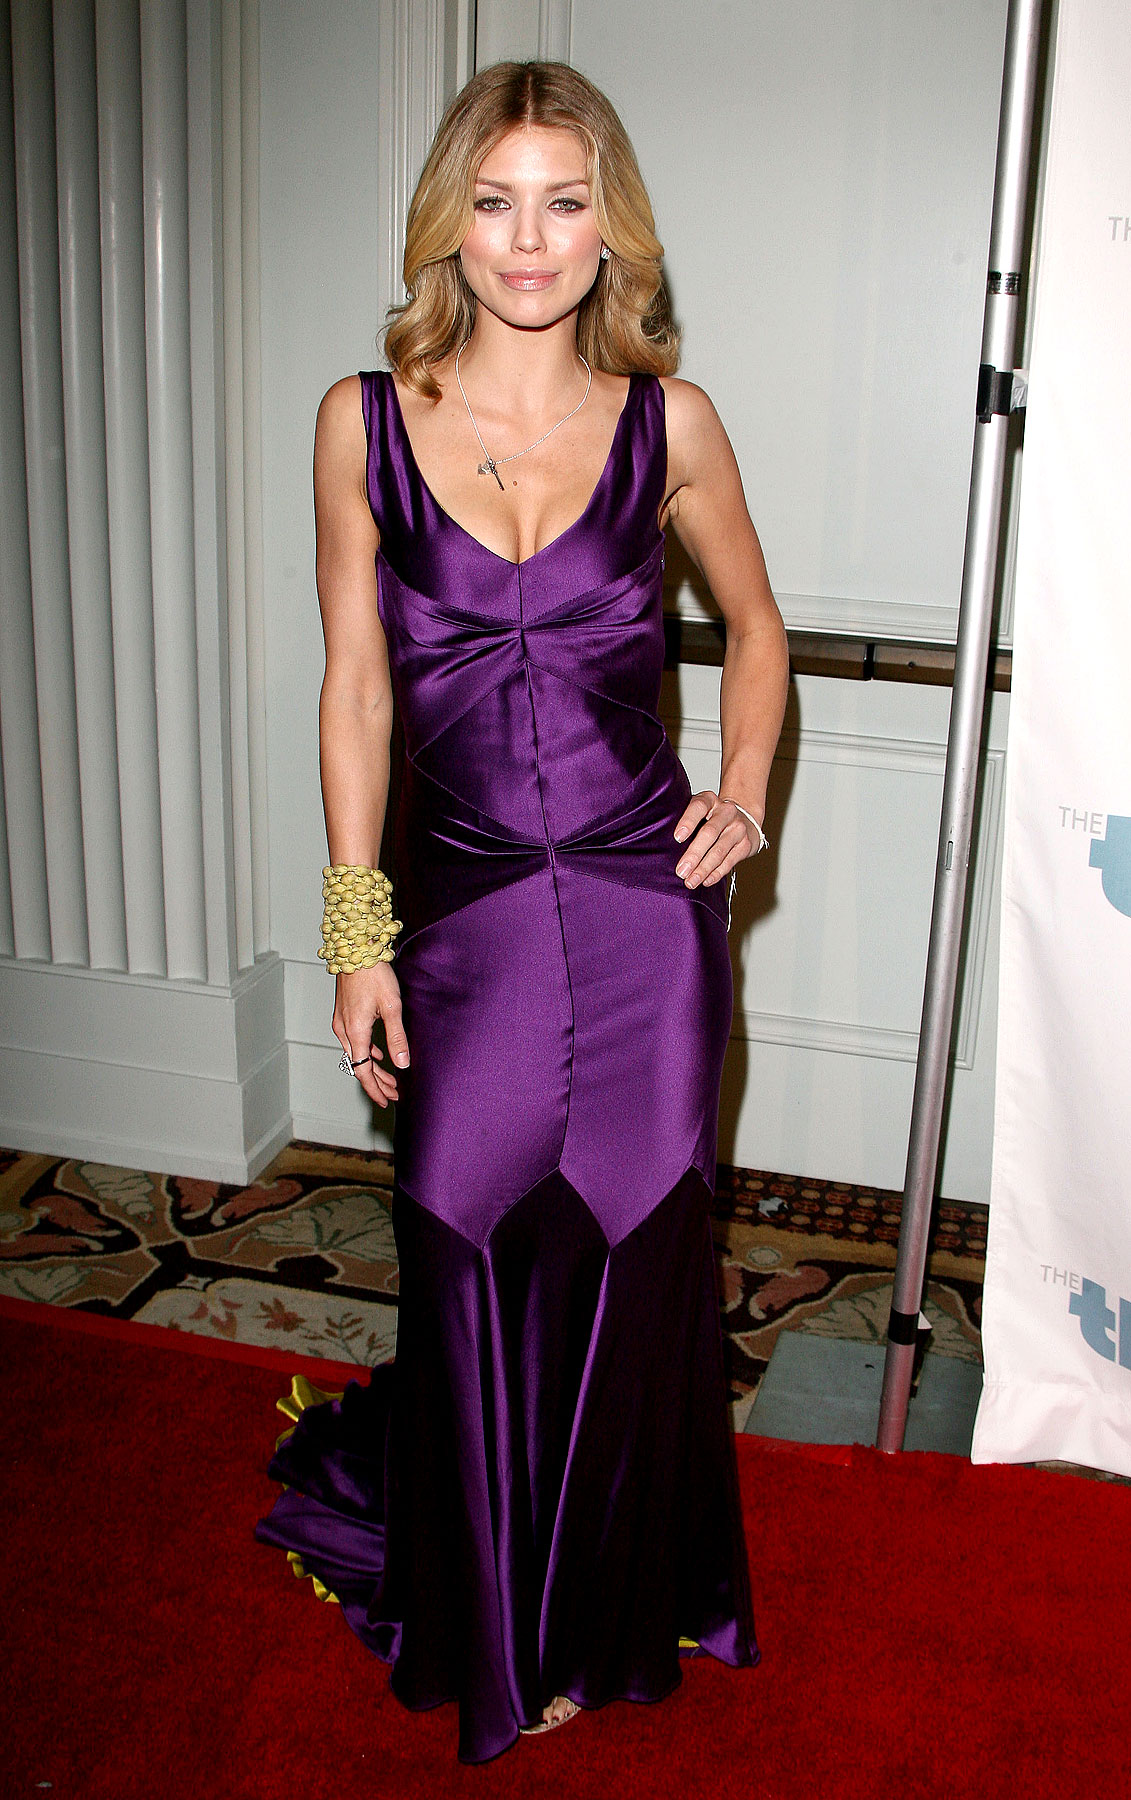 AnnaLynne McCord Gets Royal On The Red Carpet (PHOTOS)